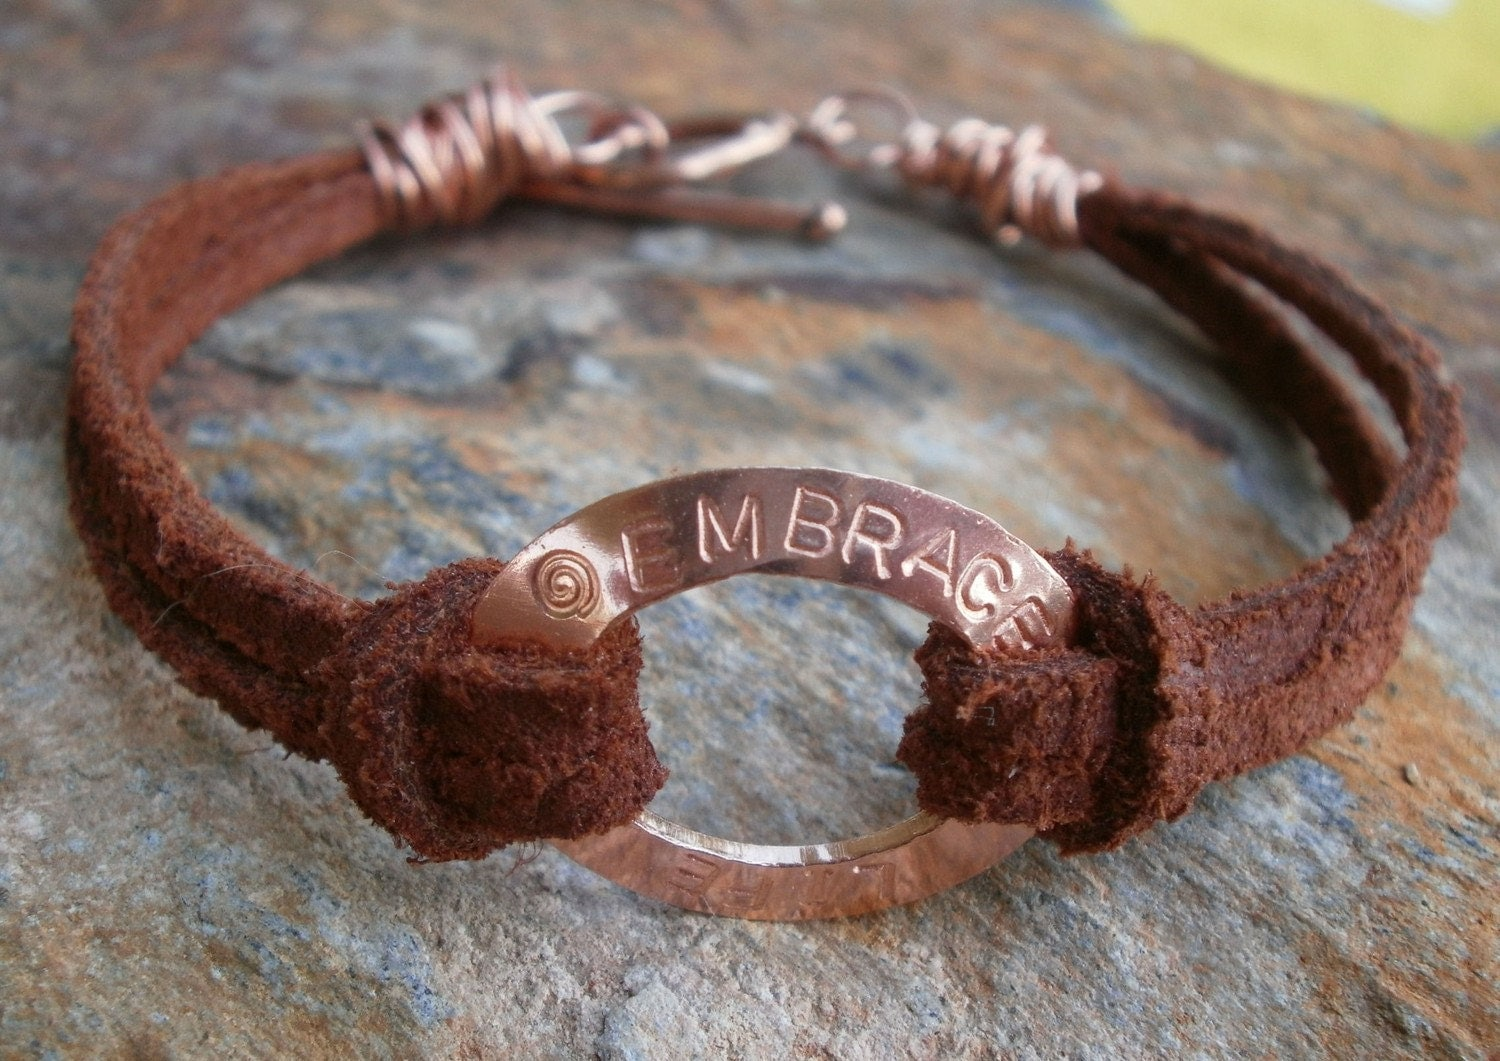 Embrace Life - Handstamped and Handforged Solid Copper Bracelet with a Chocolate Brown Leather Cord by Jean Skipper